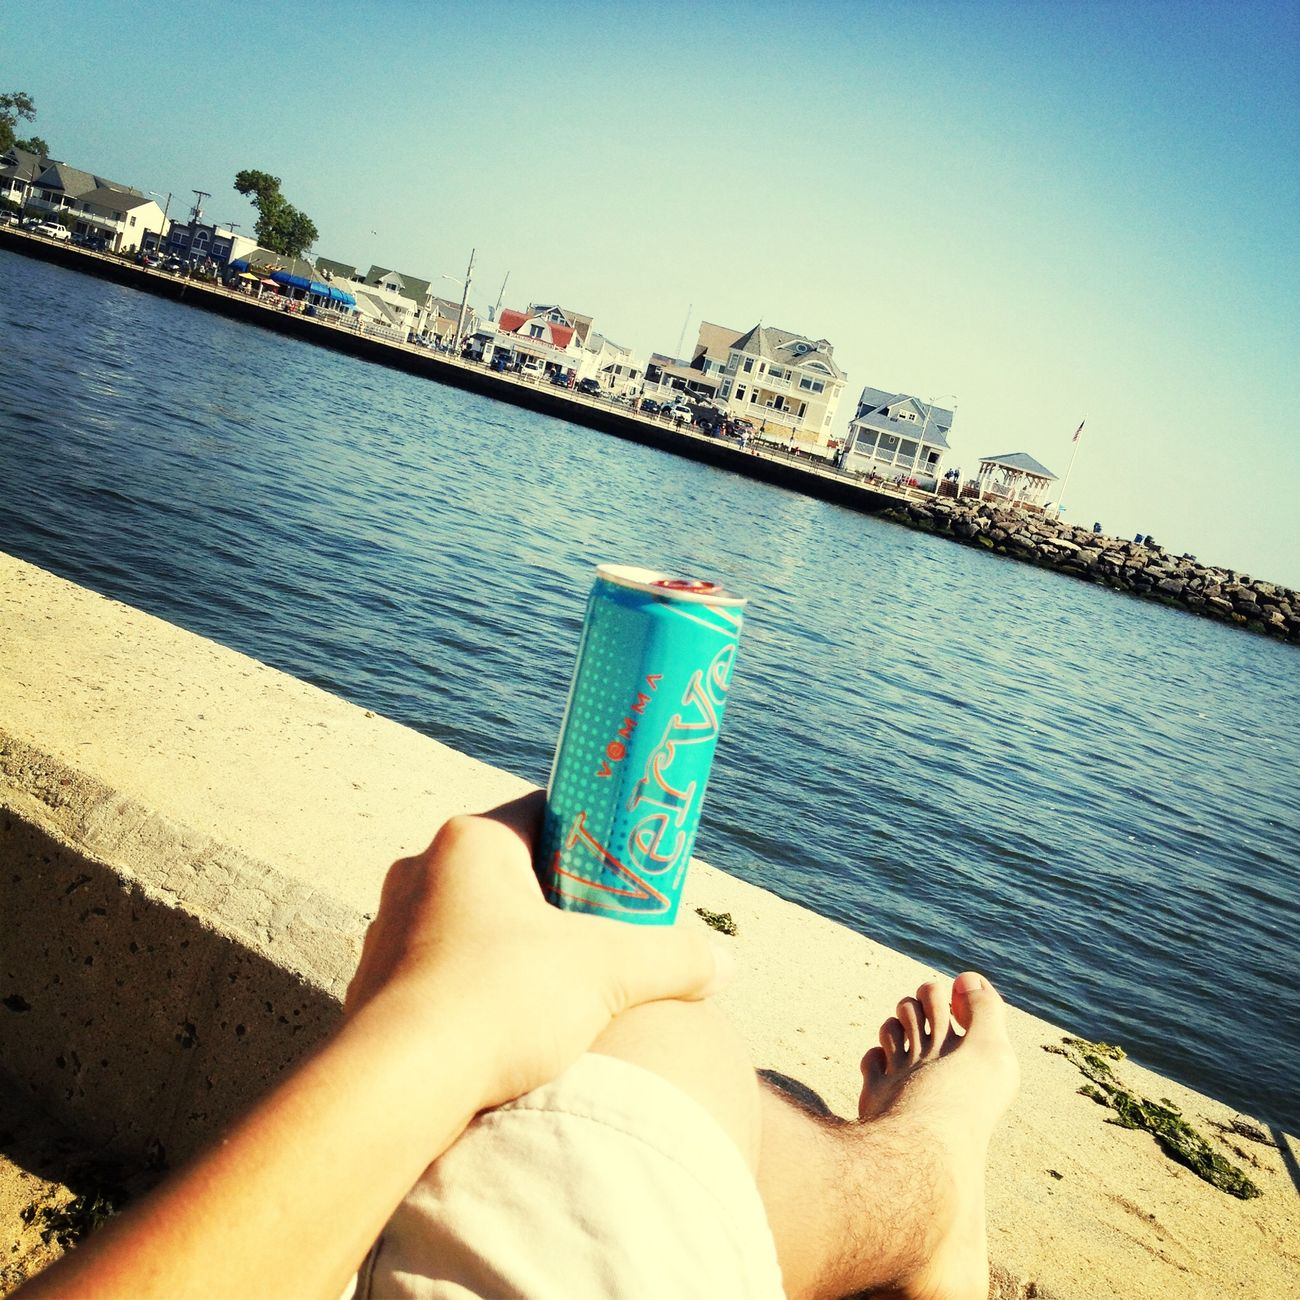 Enjoying Life Vemma  Just Chillin' Ypr